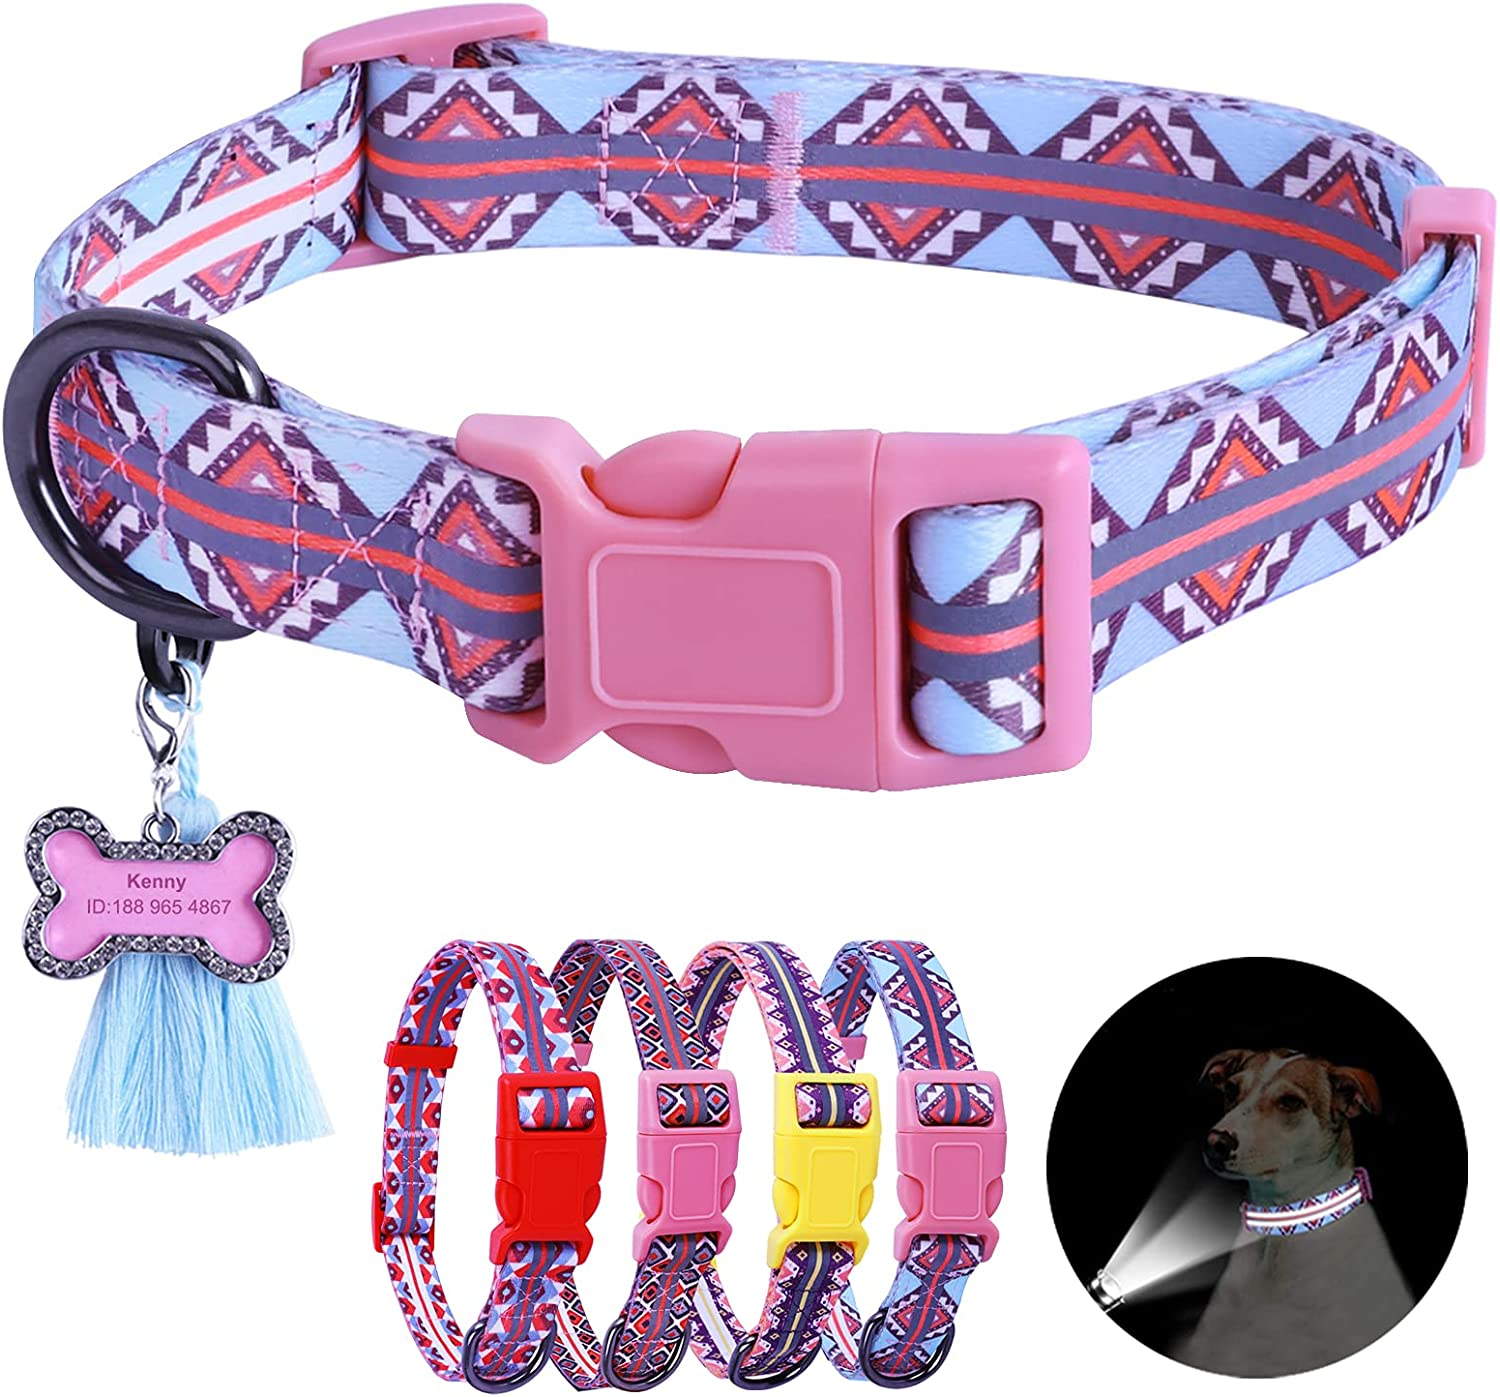 Osonm Reflective Dog Collar gift Ranking TOP16 with Adjust Reflection Double Lines